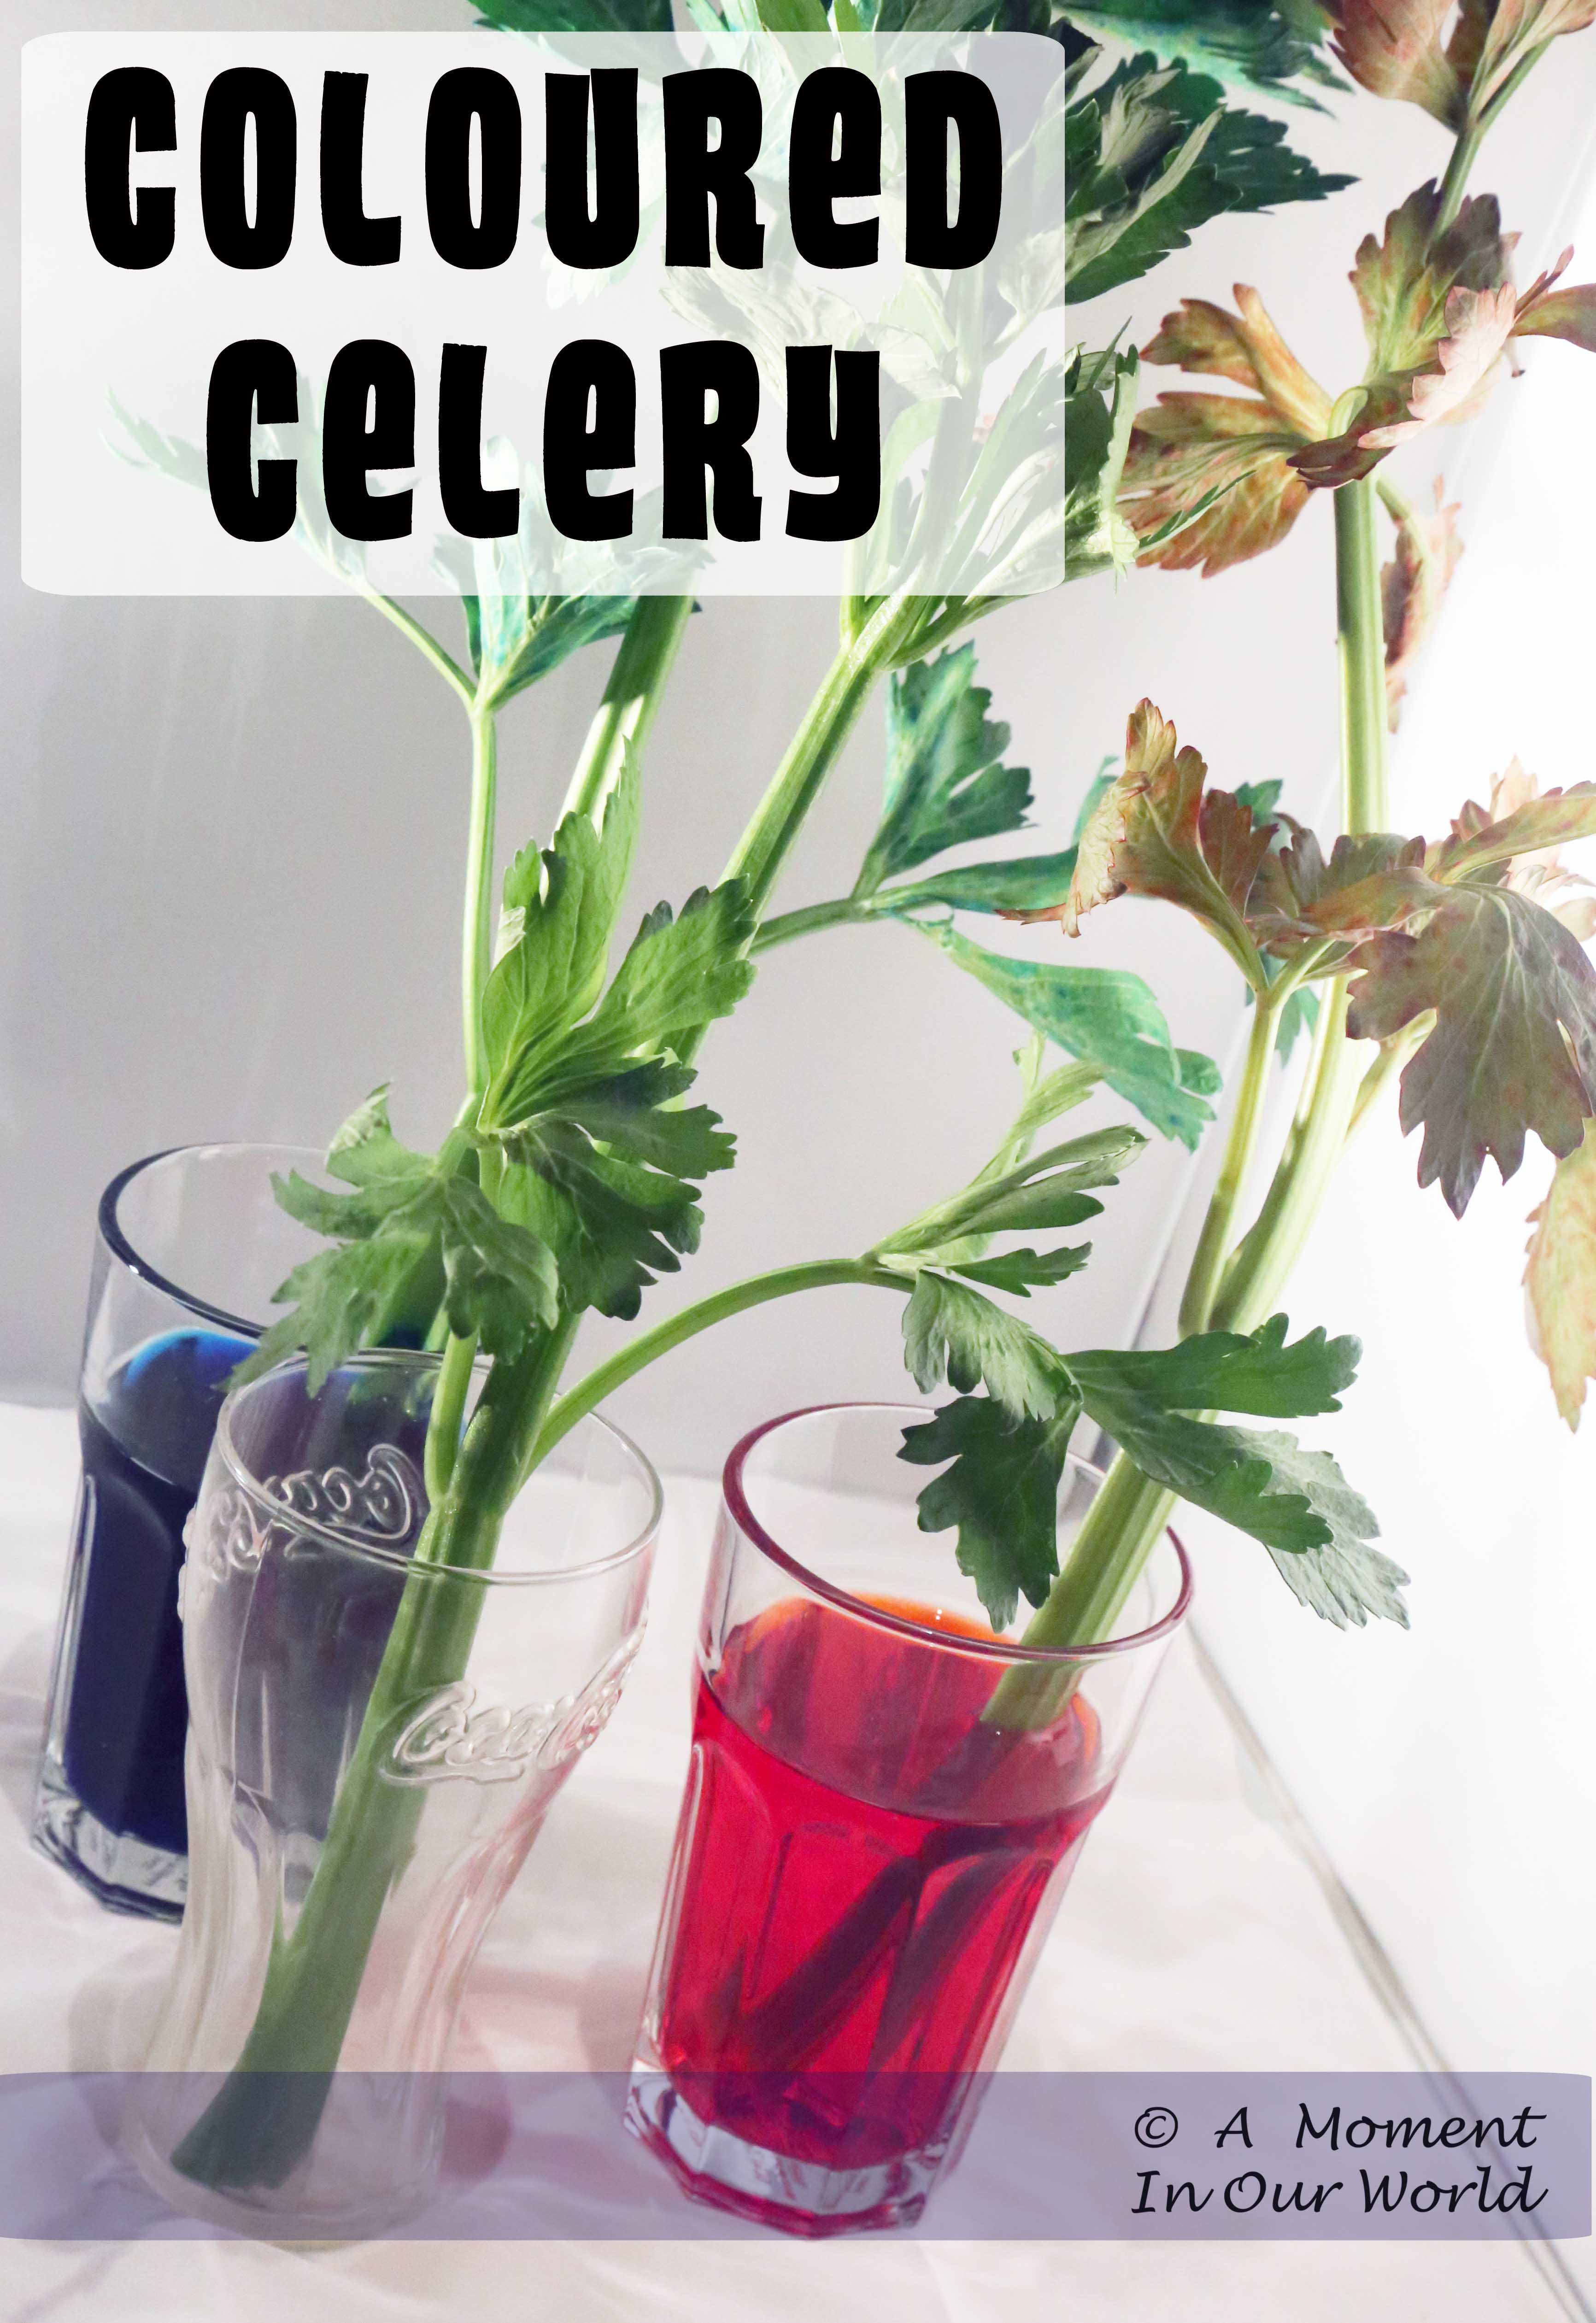 Making Celery Colourful